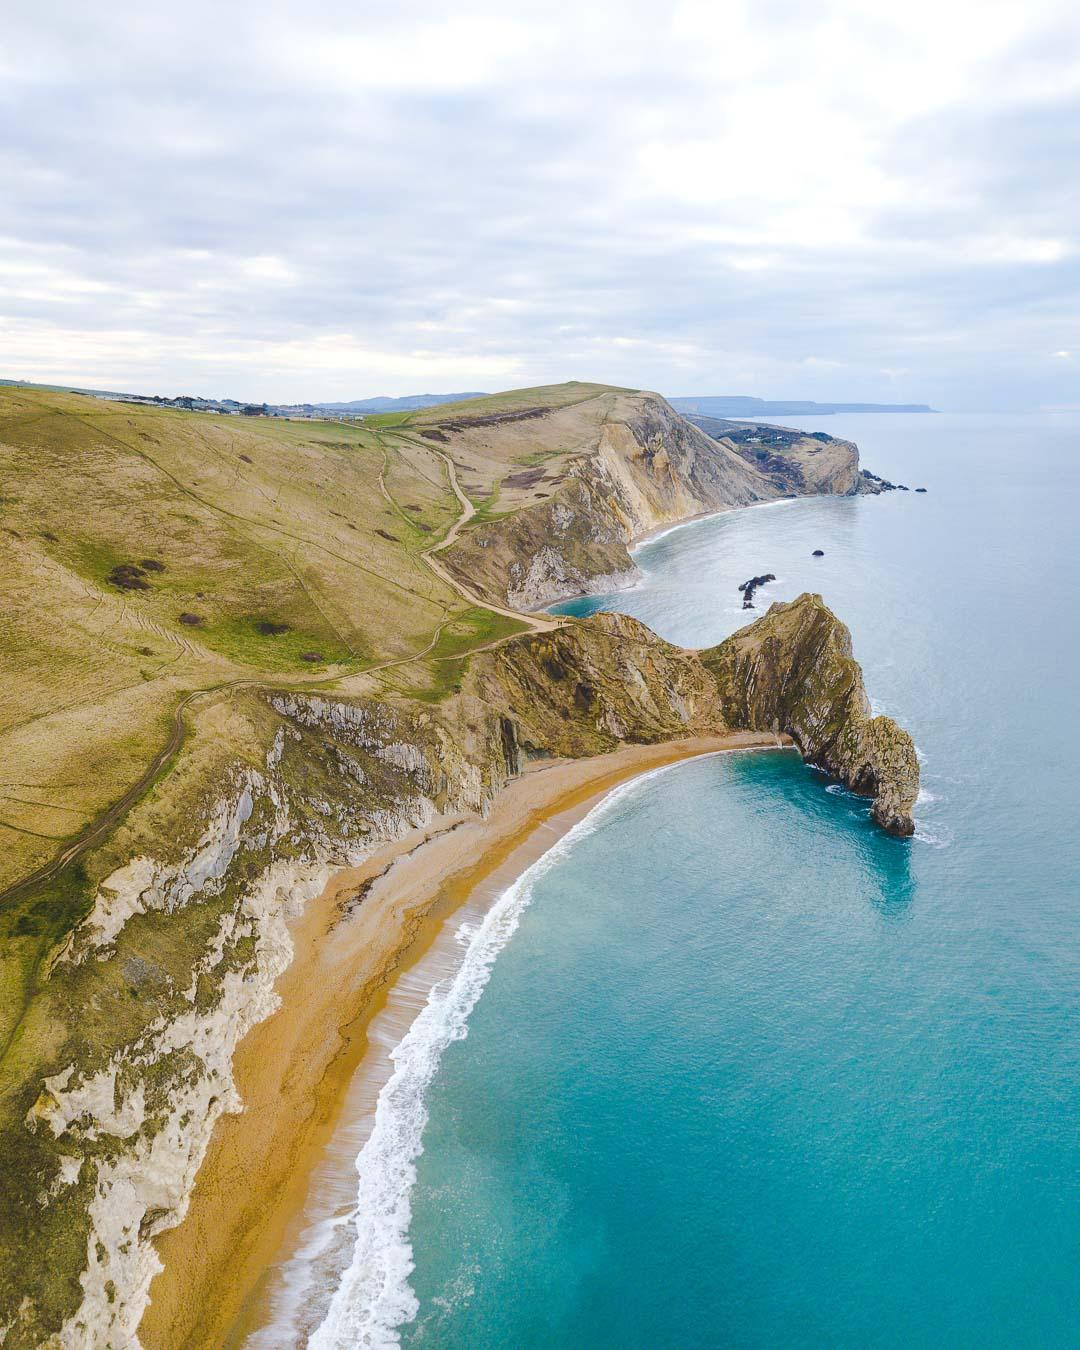 durdle door - photo #13